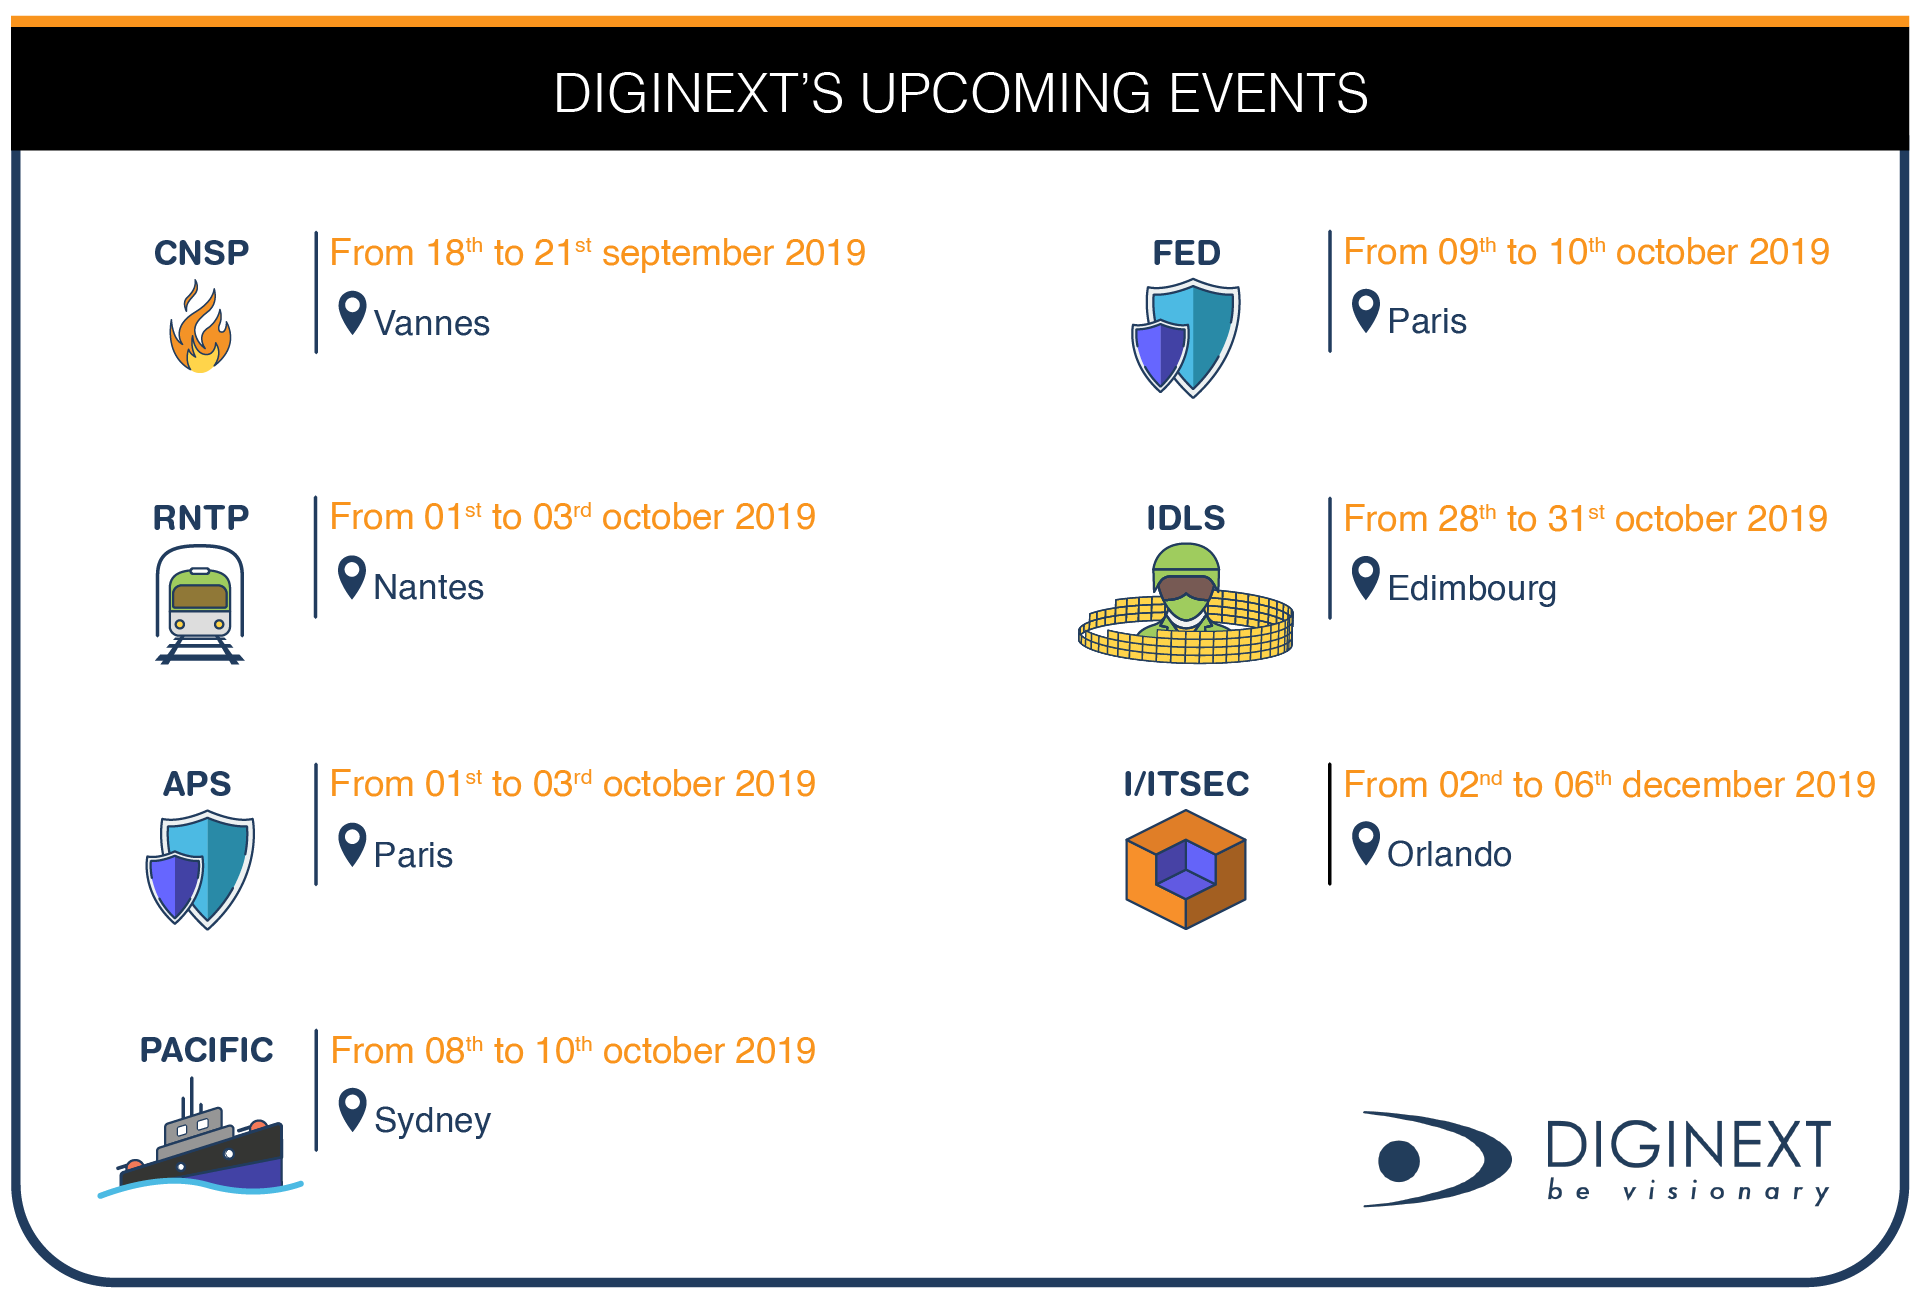 DIGINEXT upcoming events 2019